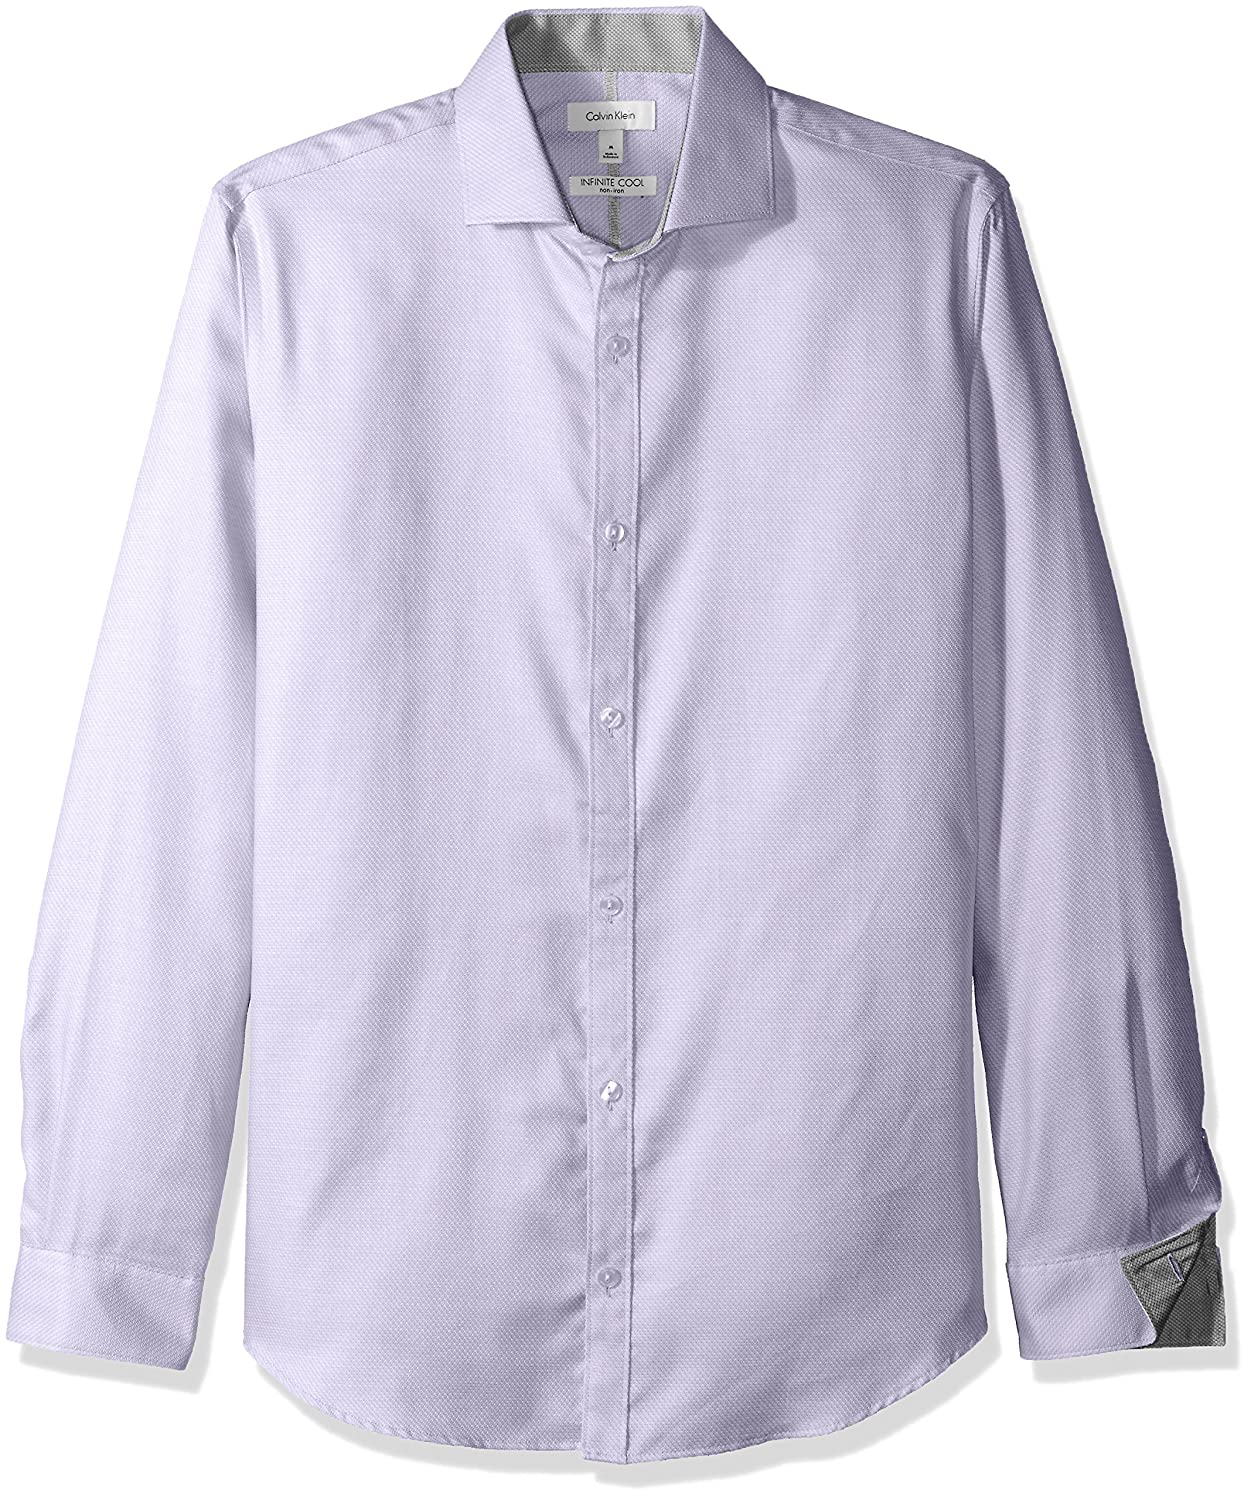 Calvin Klein Men's Dobby Twill Infinite Cool Long Sleeve Button Down Shirt 811W122